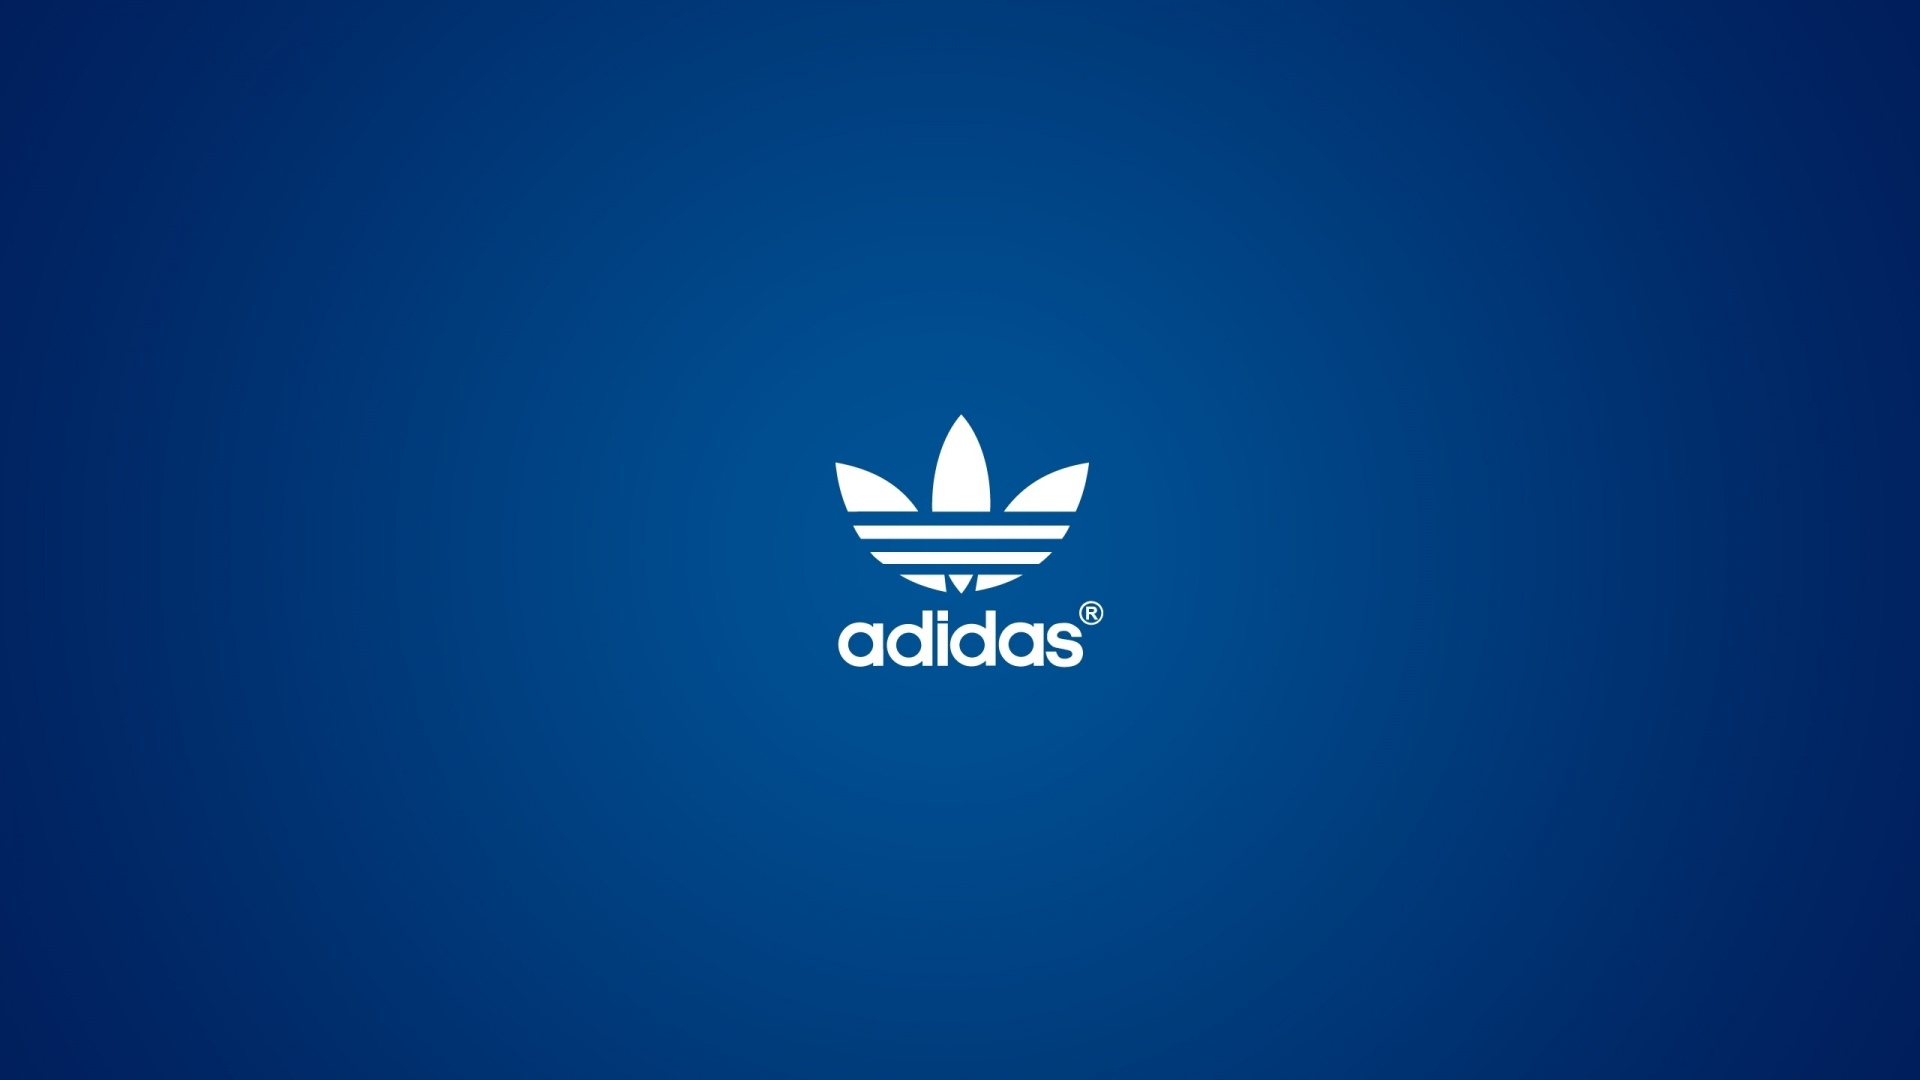 adidas logo full hd wallpaper download 1080p 1920x1080 1920x1080